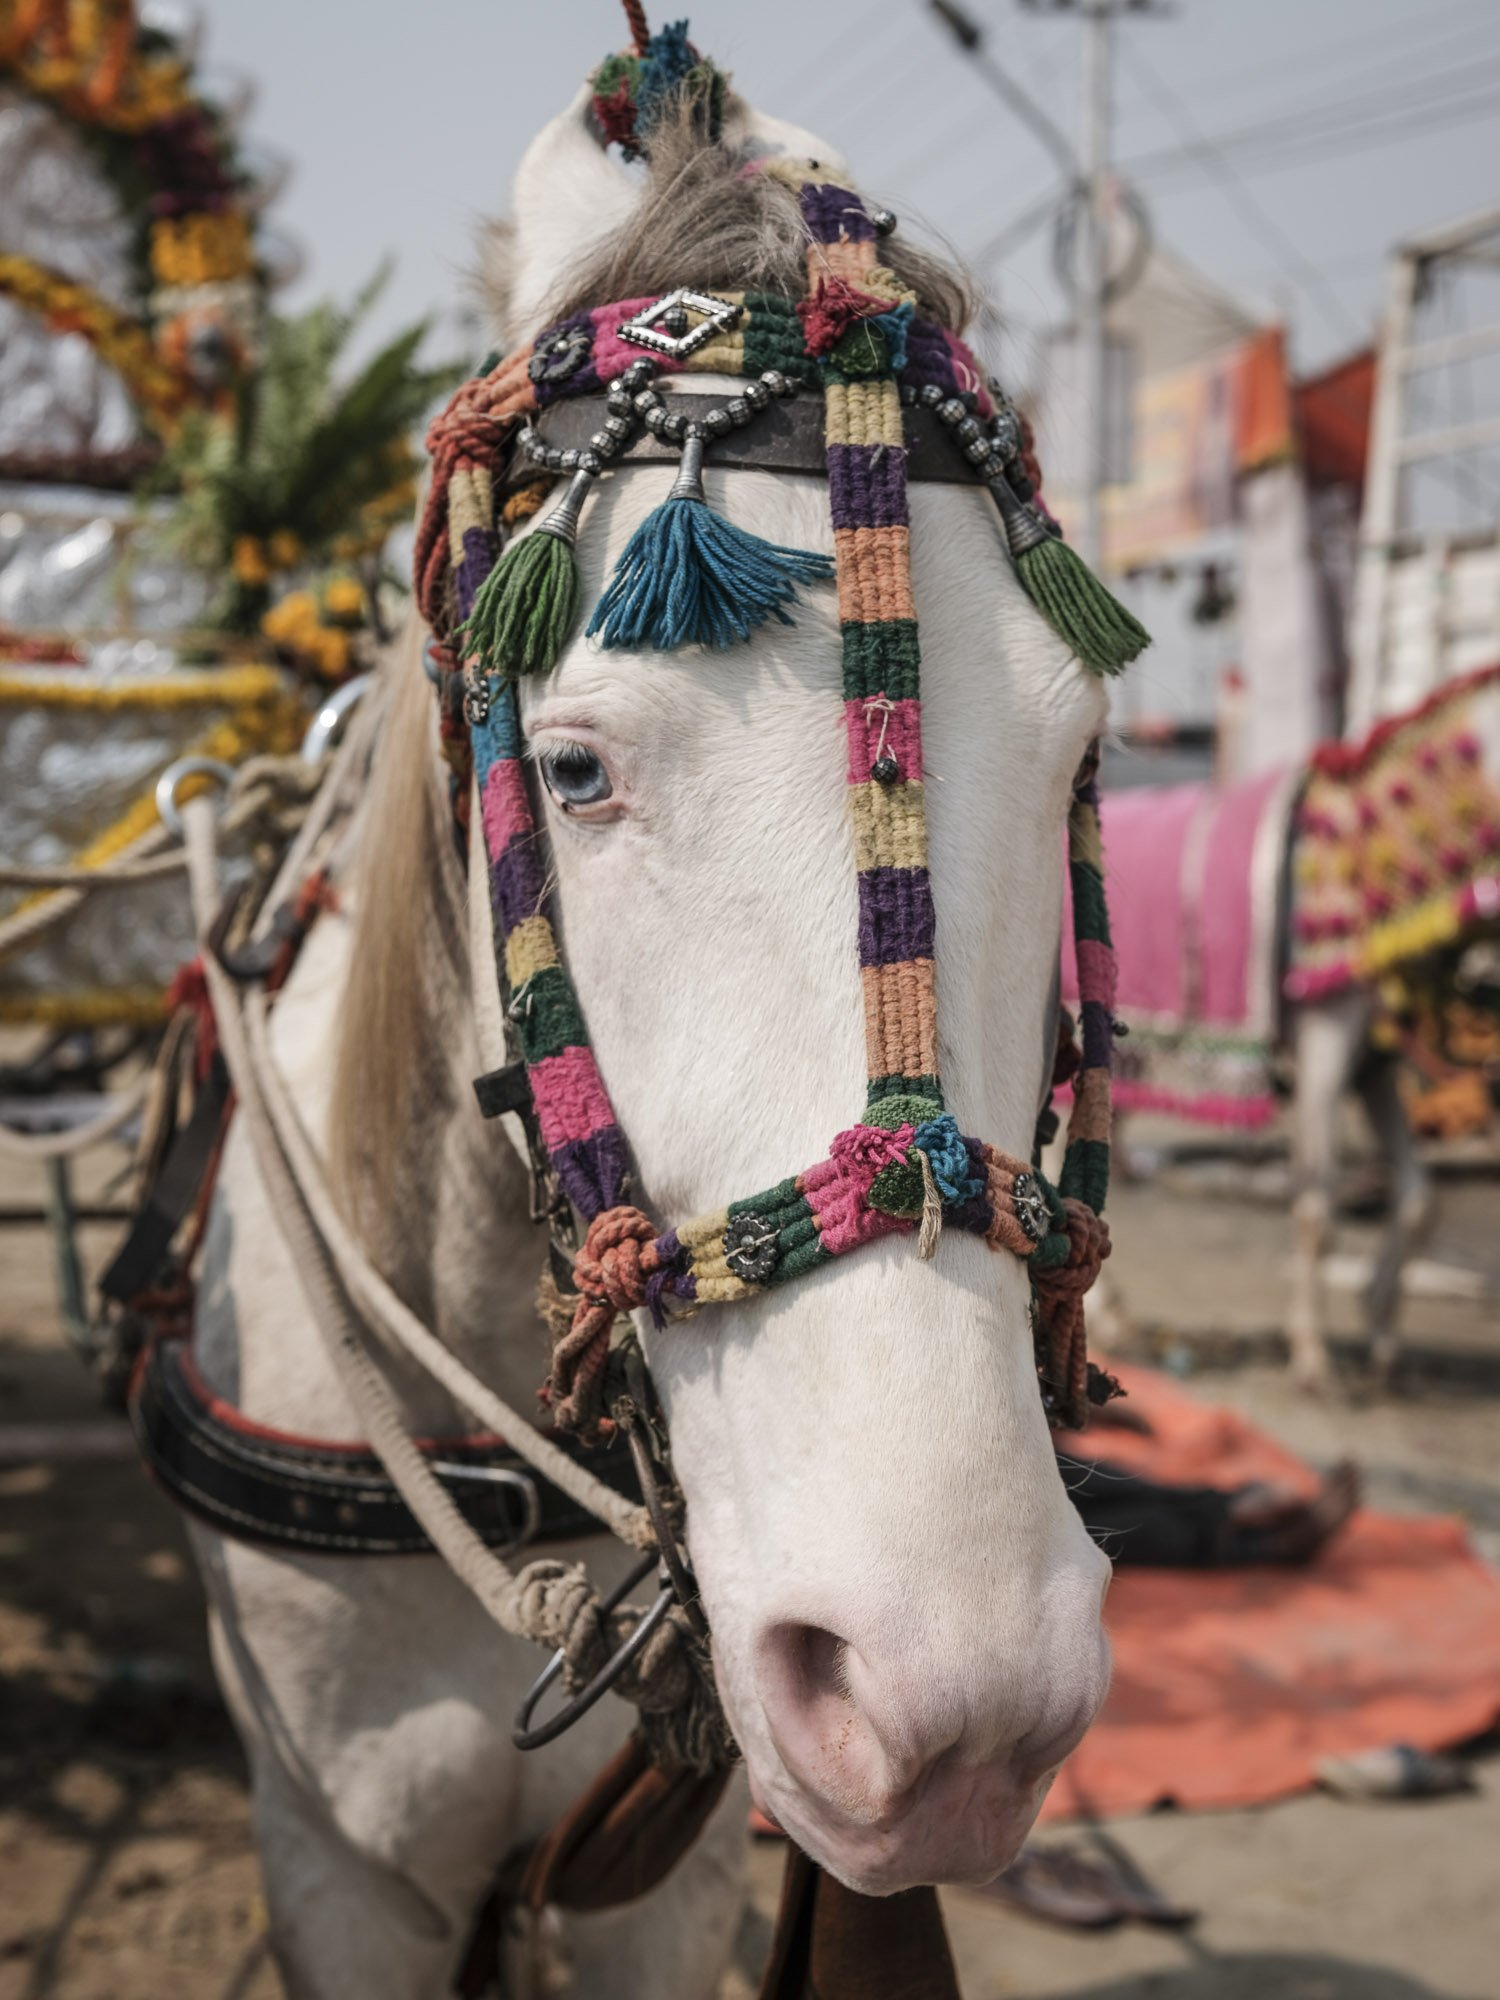 white horse pilgrims Kumbh mela 2019 India Allahabad Prayagraj Ardh hindu religious Festival event rivers photographer jose jeuland photography